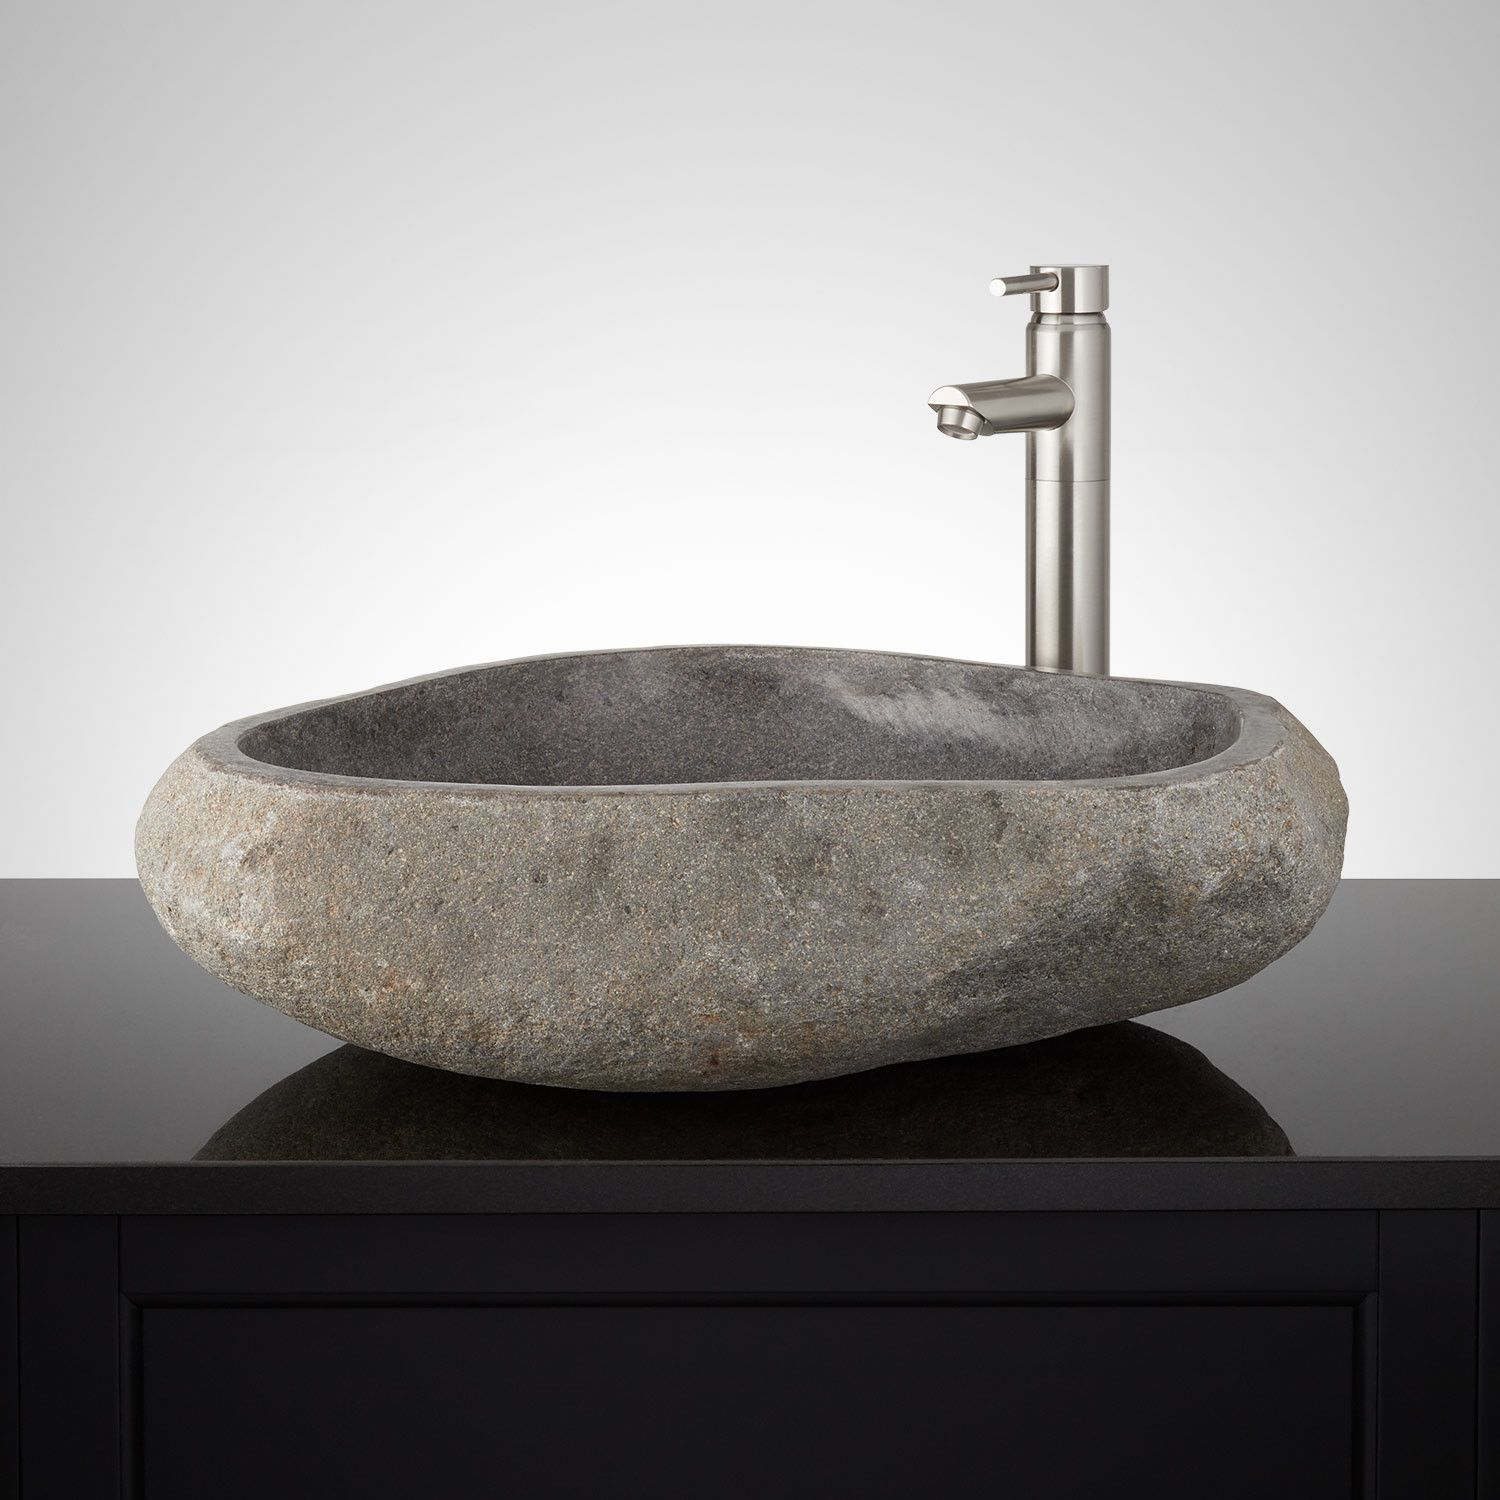 Griffin Natural River Stone Vessel Sink Stone Vessel Sinks Sink